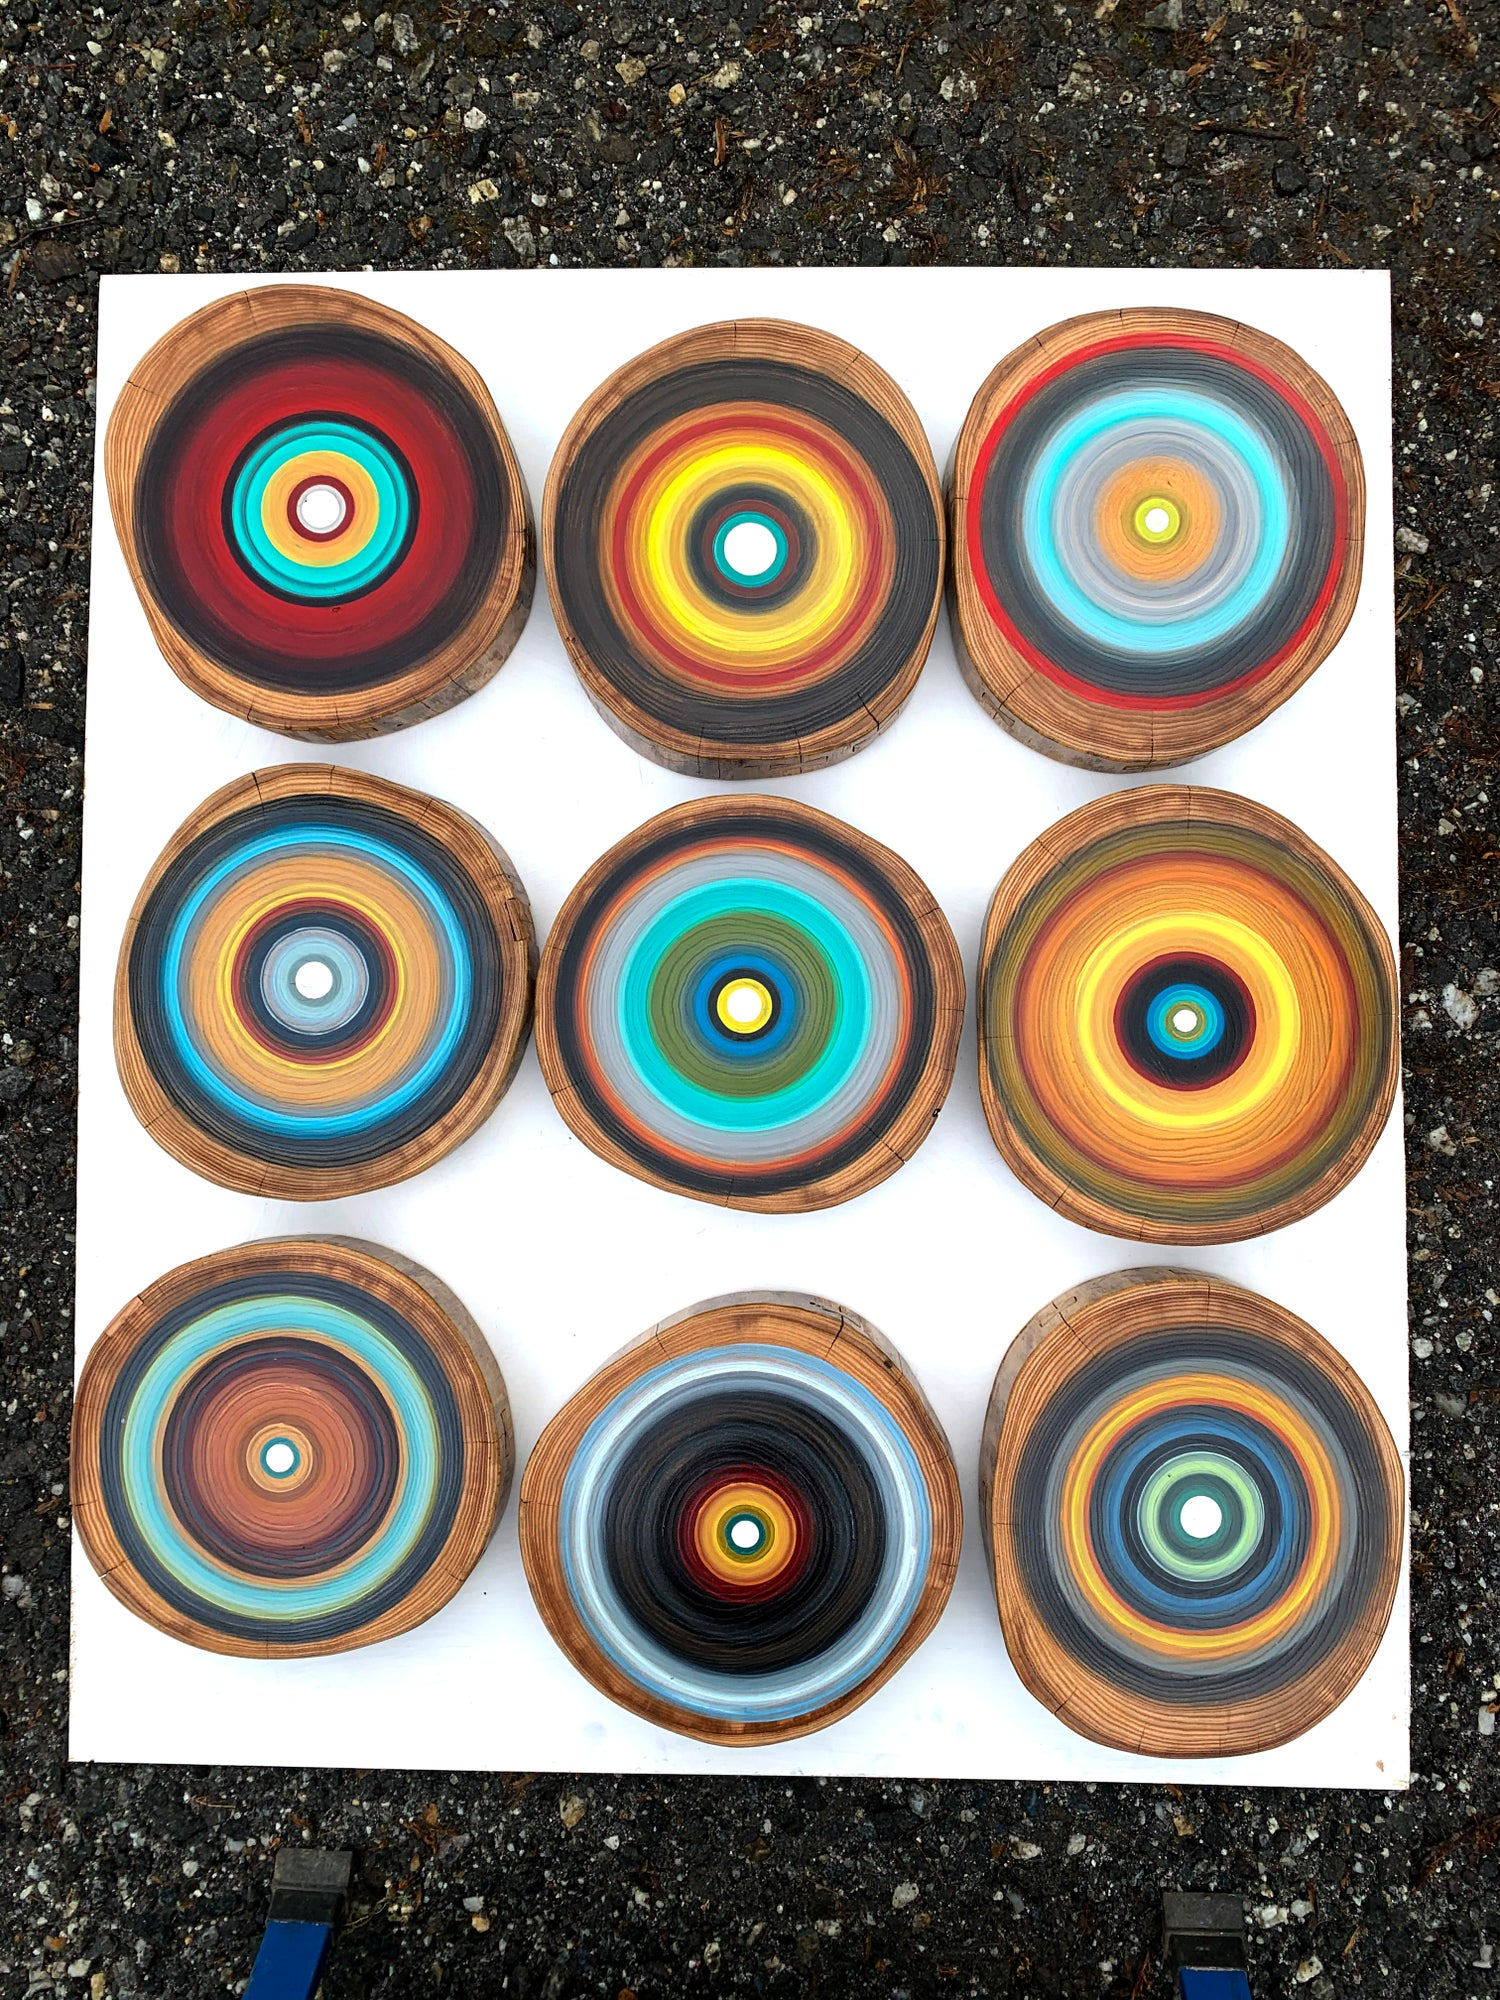 Image of 12 Large Tree Ring Paintings Wall Art made of Red Elm Wood